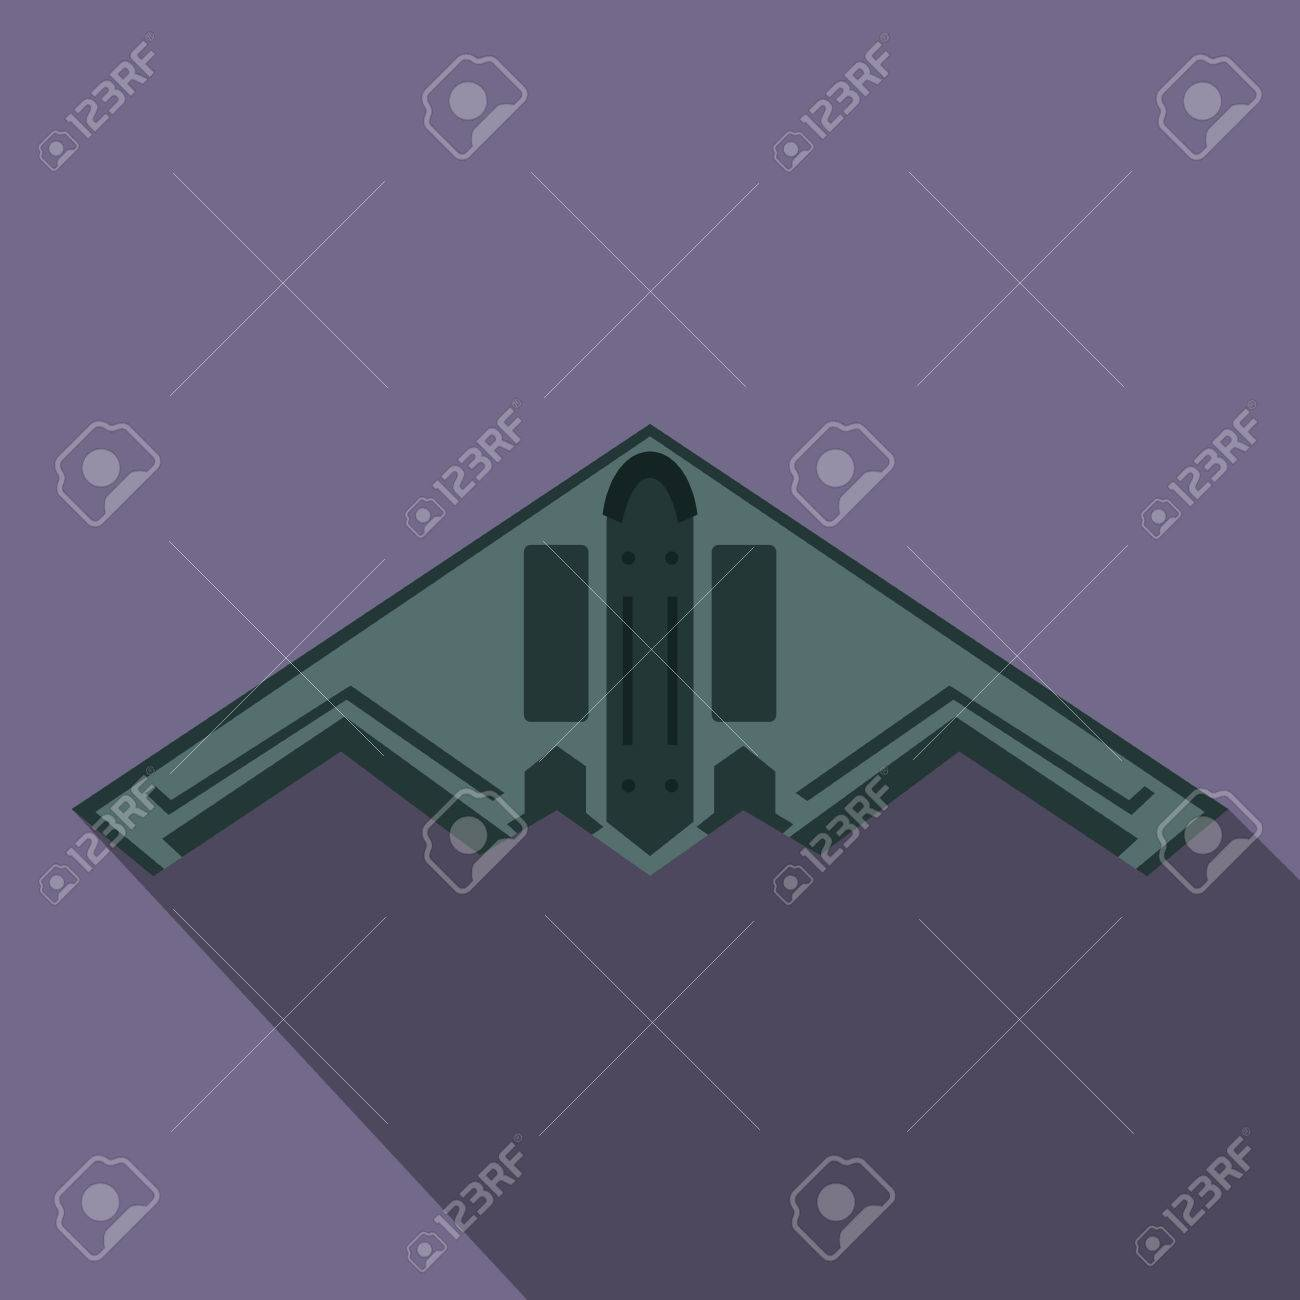 Stealth Bomber Icon In Flat Style On A Violet Background Royalty 1300x1300